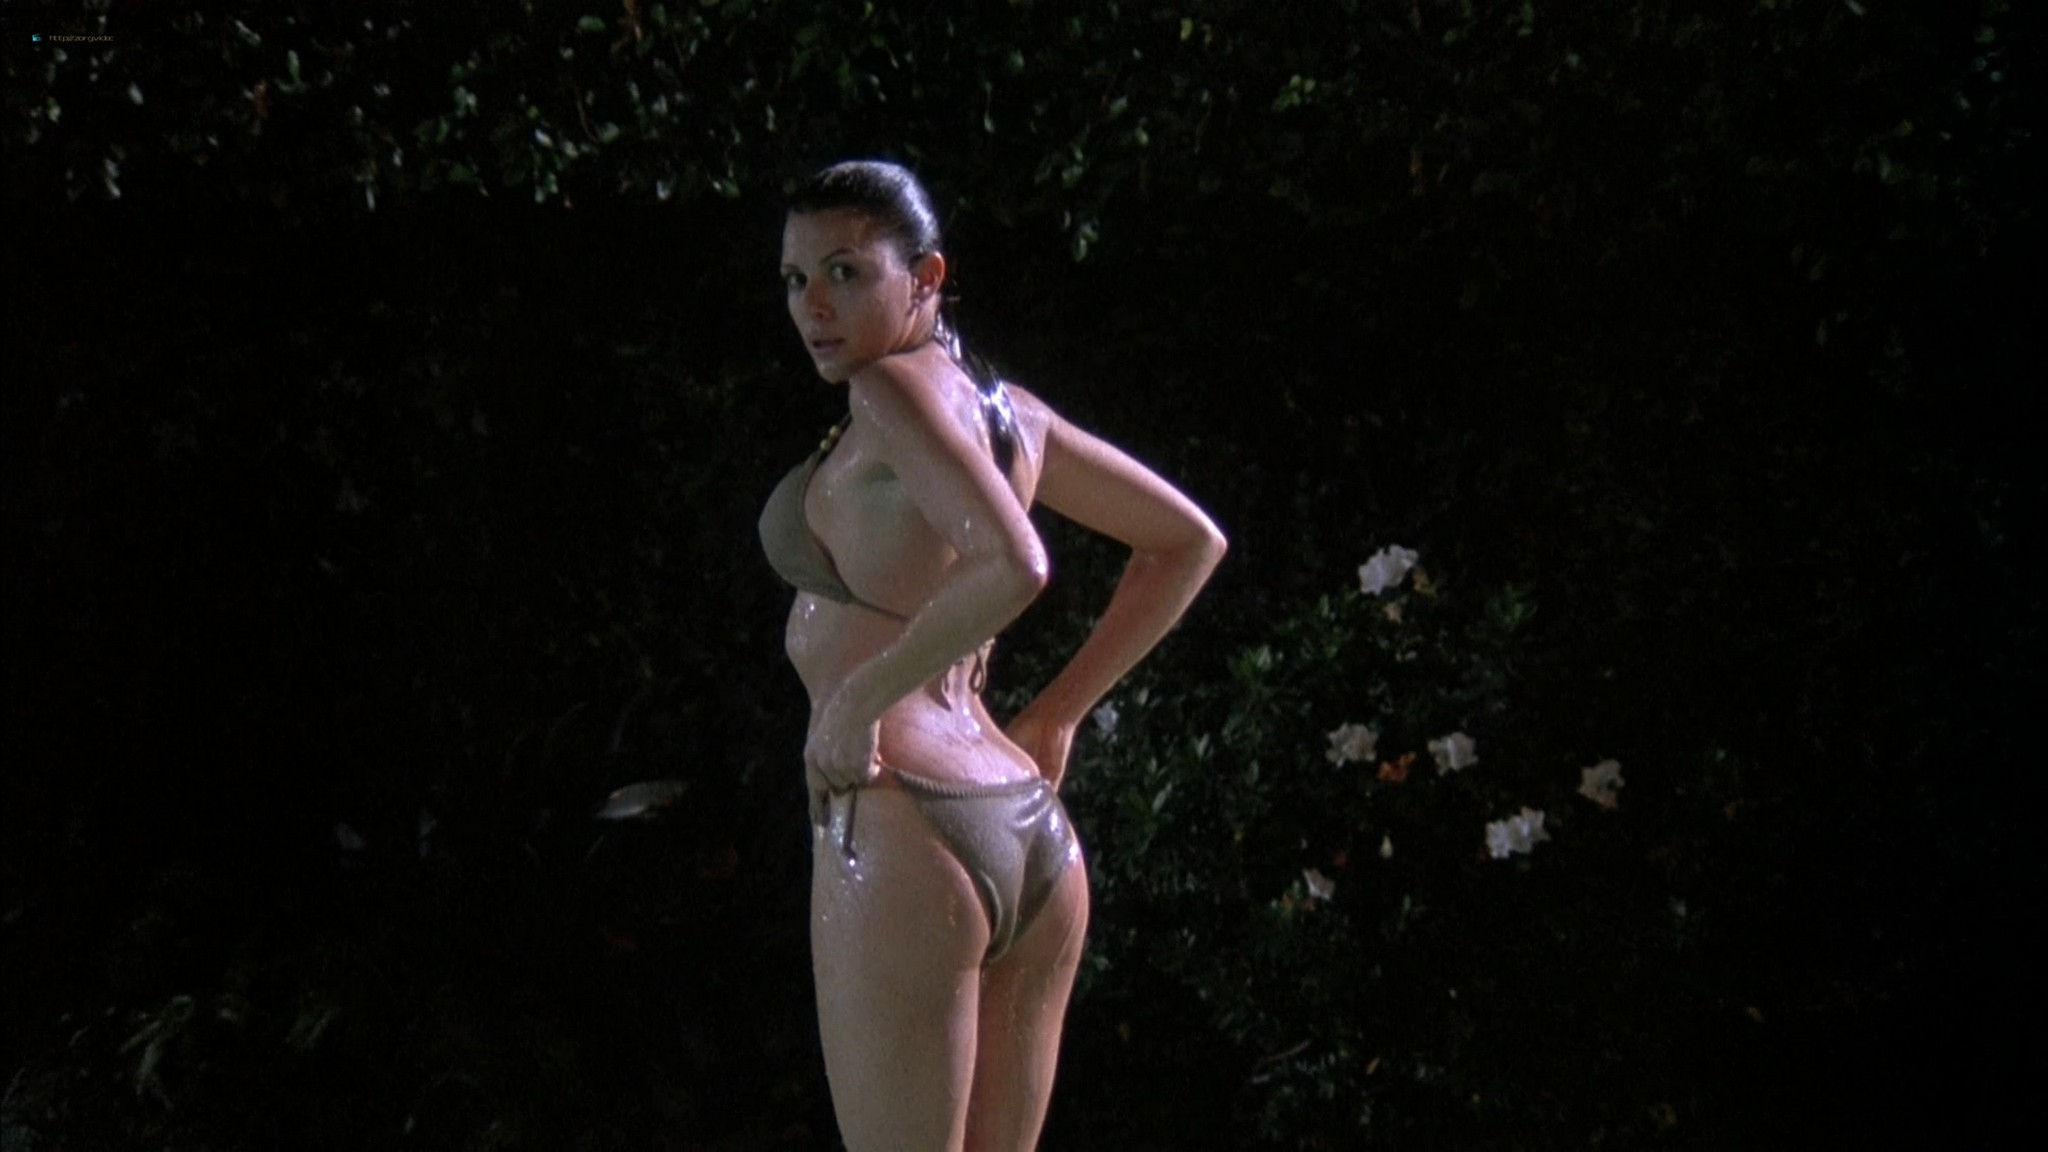 Kari Wuhrer wet and hot Amy Lindsay and others nude sex - Final Examination (2003) HD 1080p Web (9)